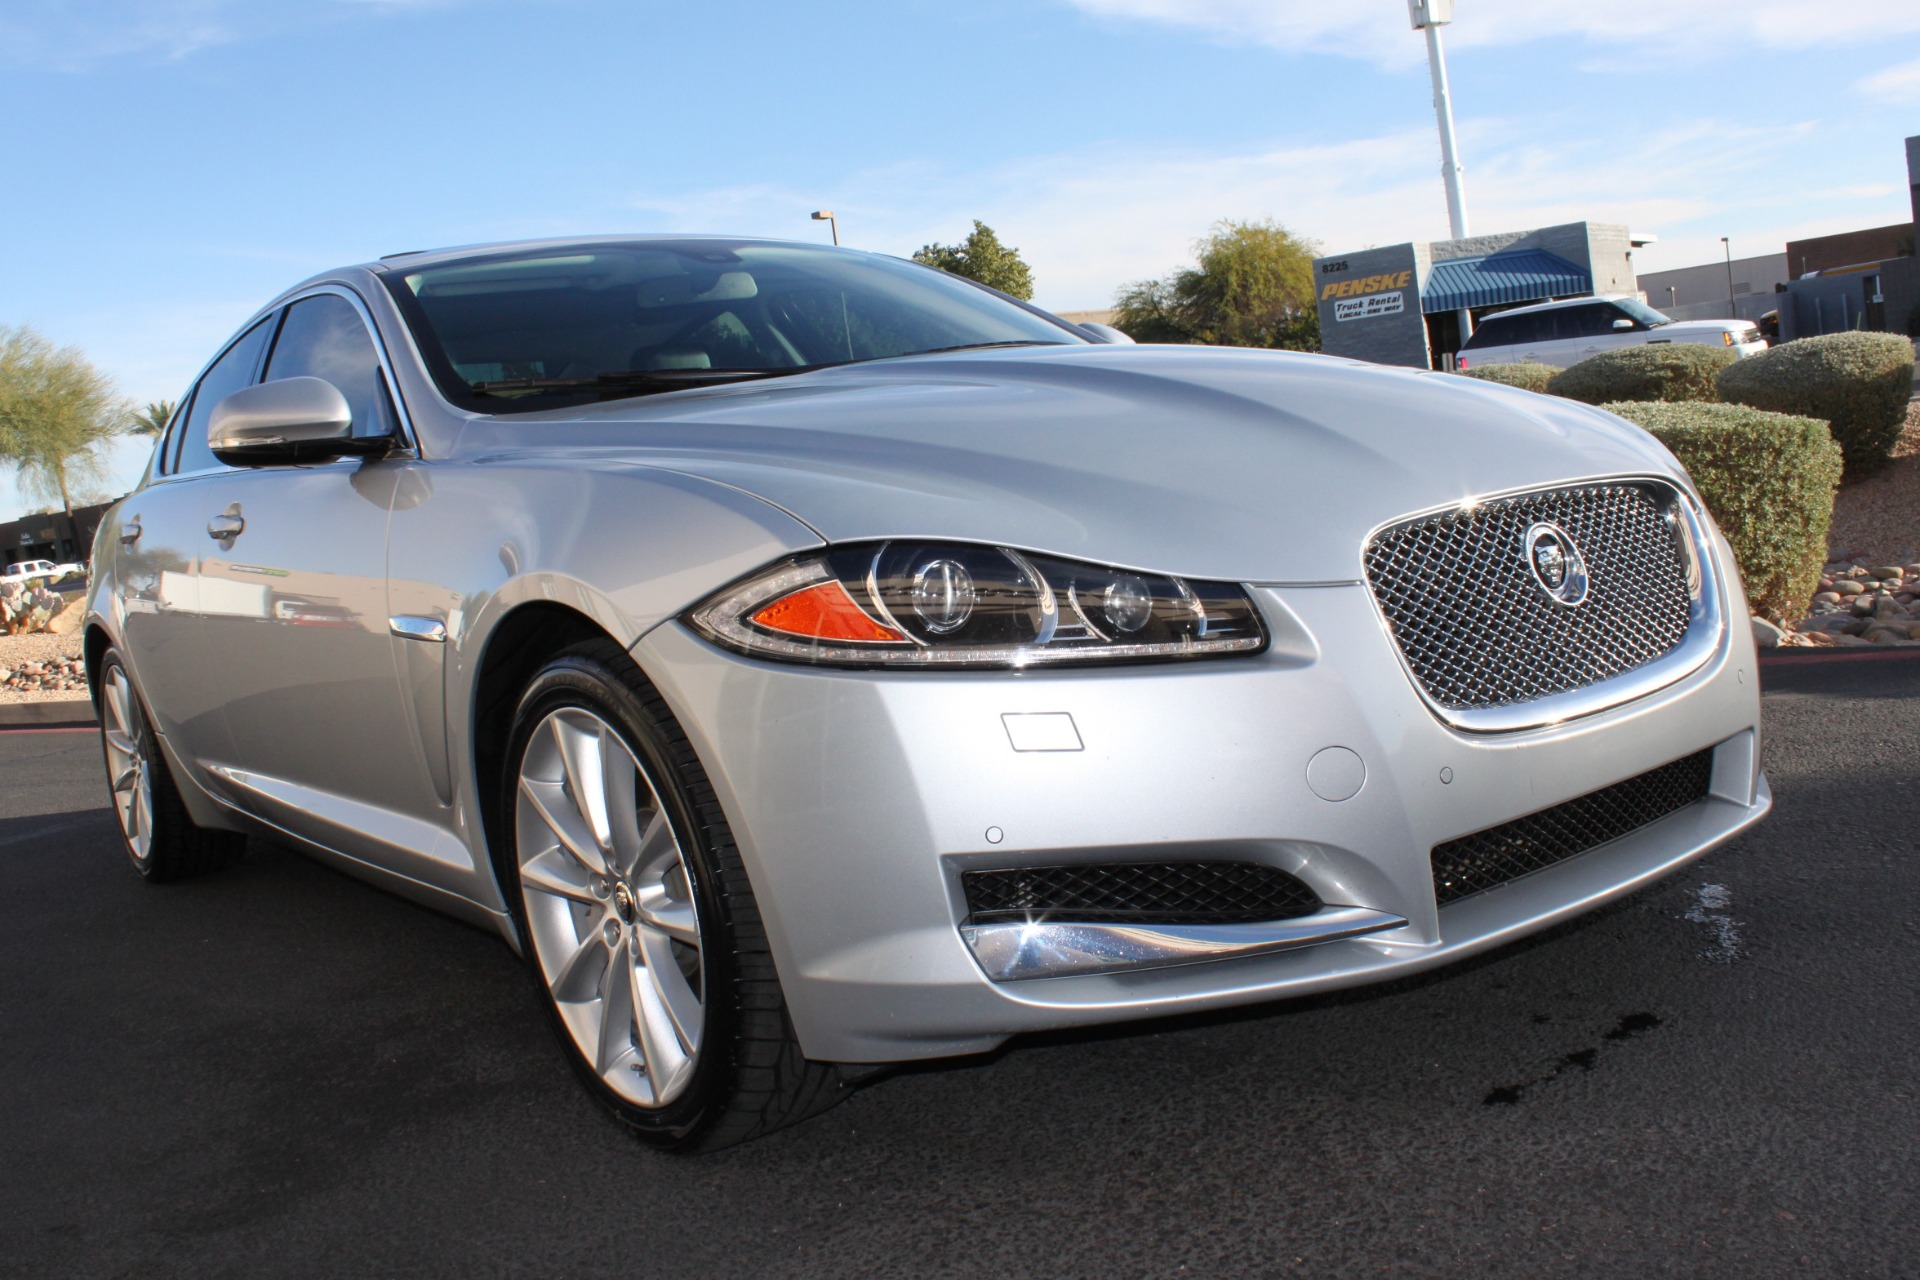 Used-2013-Jaguar-XF-I4-RWD-Mercedes-Benz